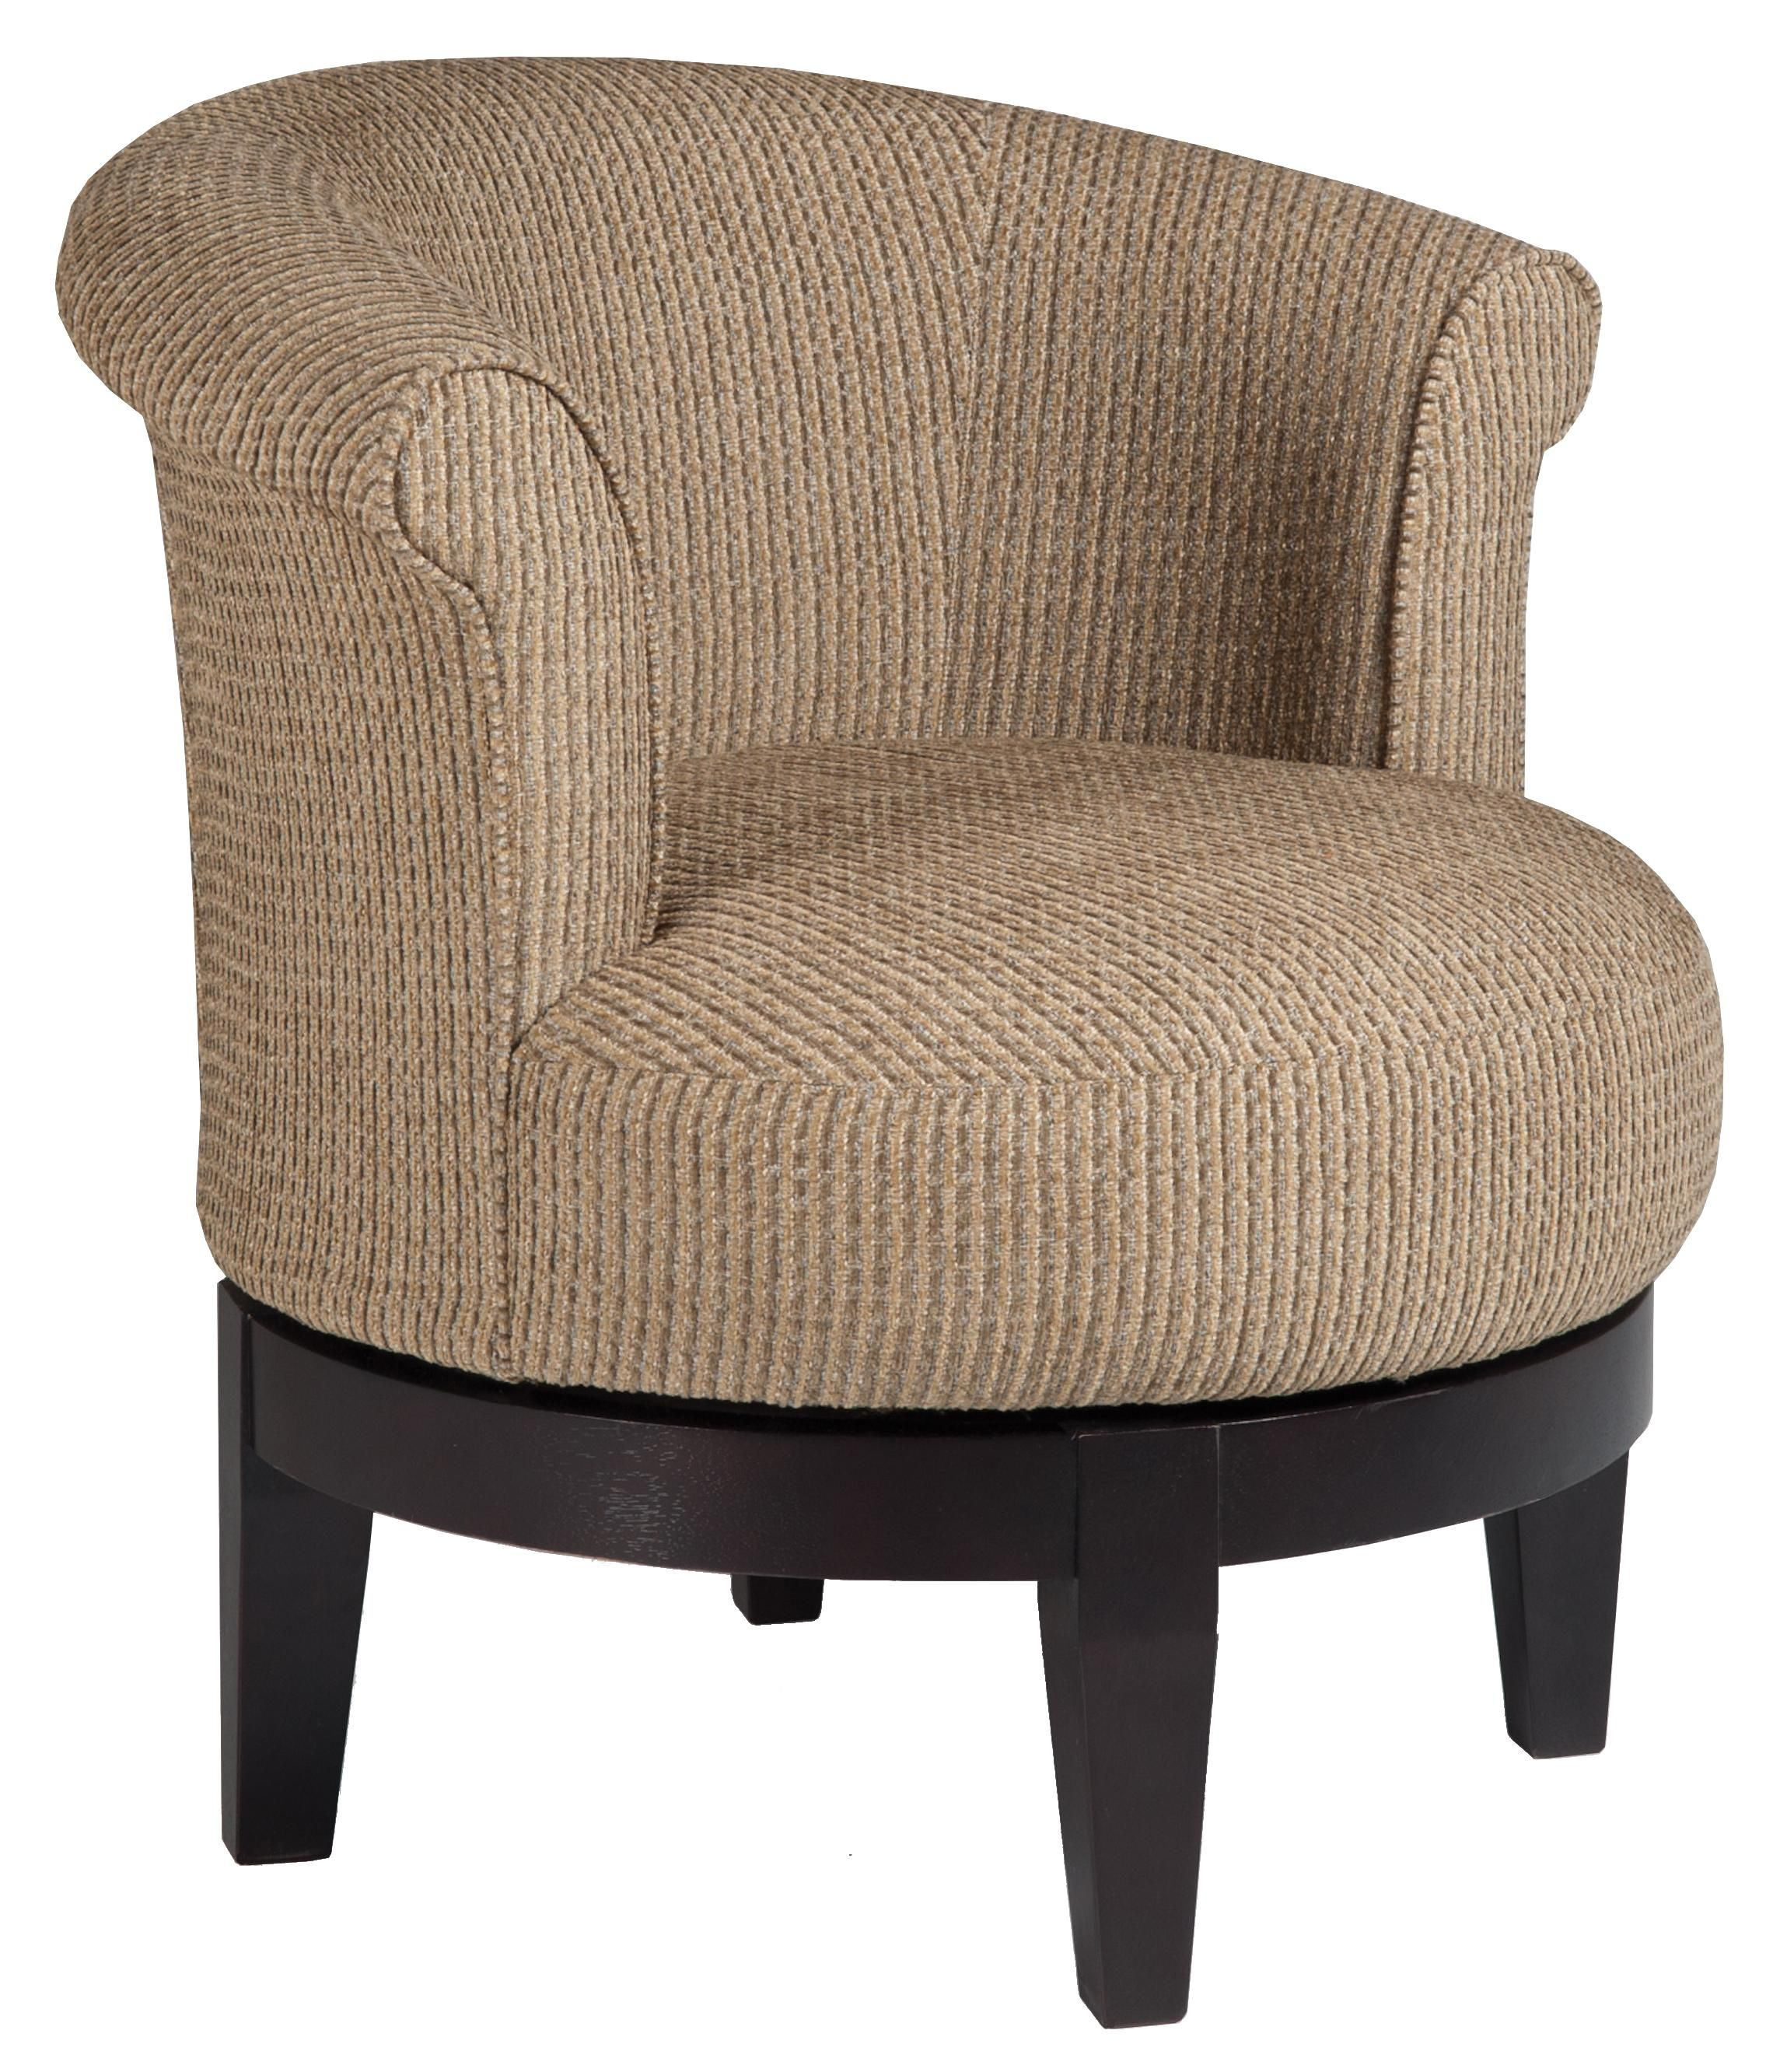 Chairs Swivel Barrel Chic Attica Swivel Chair With